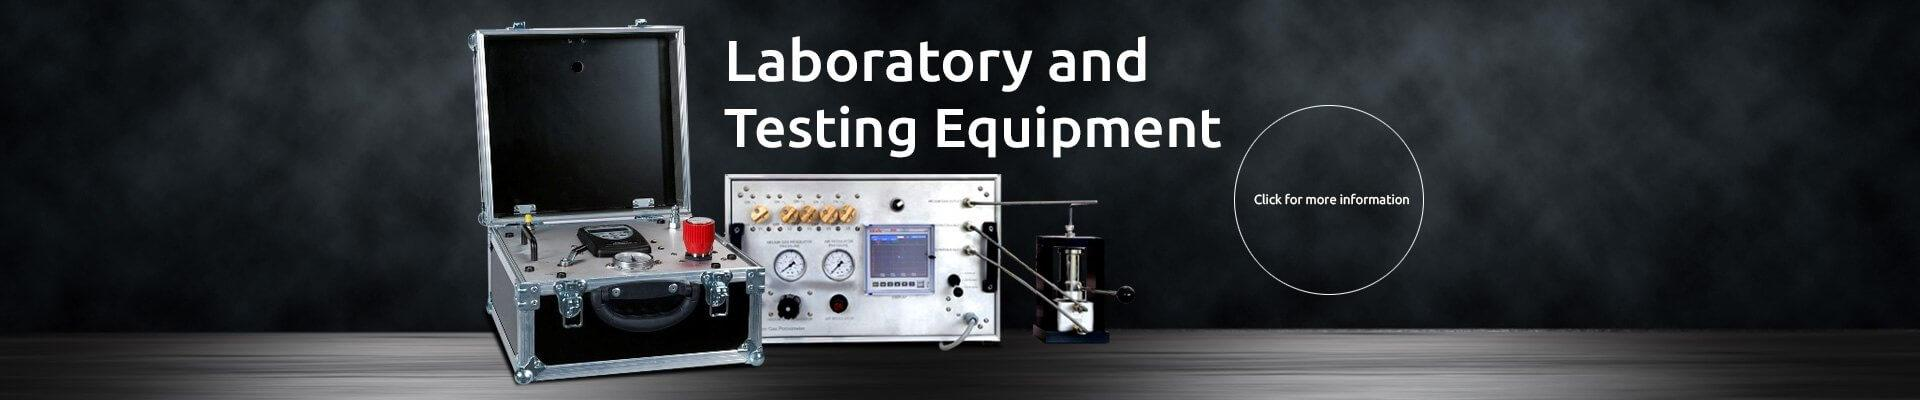 Laboratory and Testing Equipment